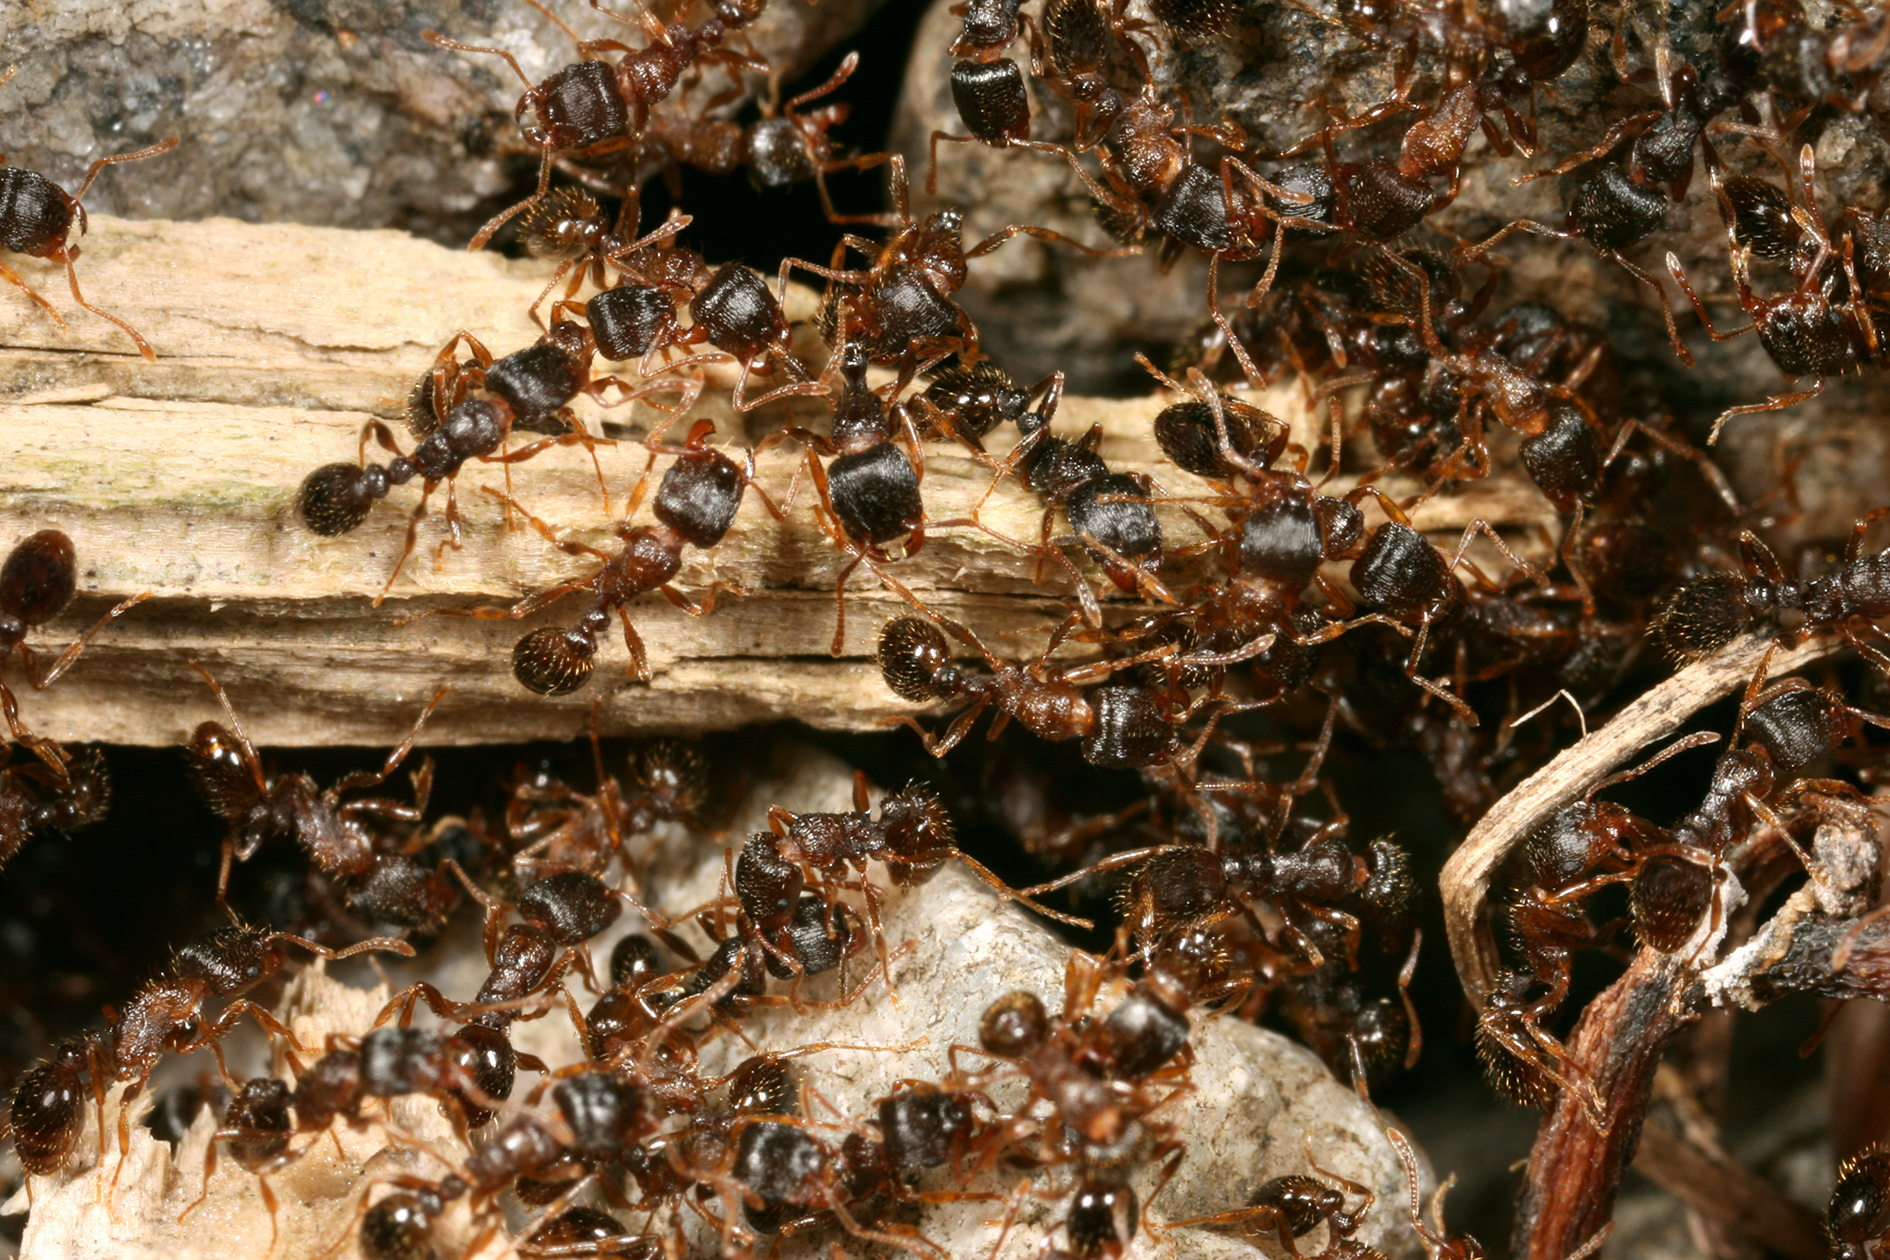 Finding An Ant Nest Space For Life